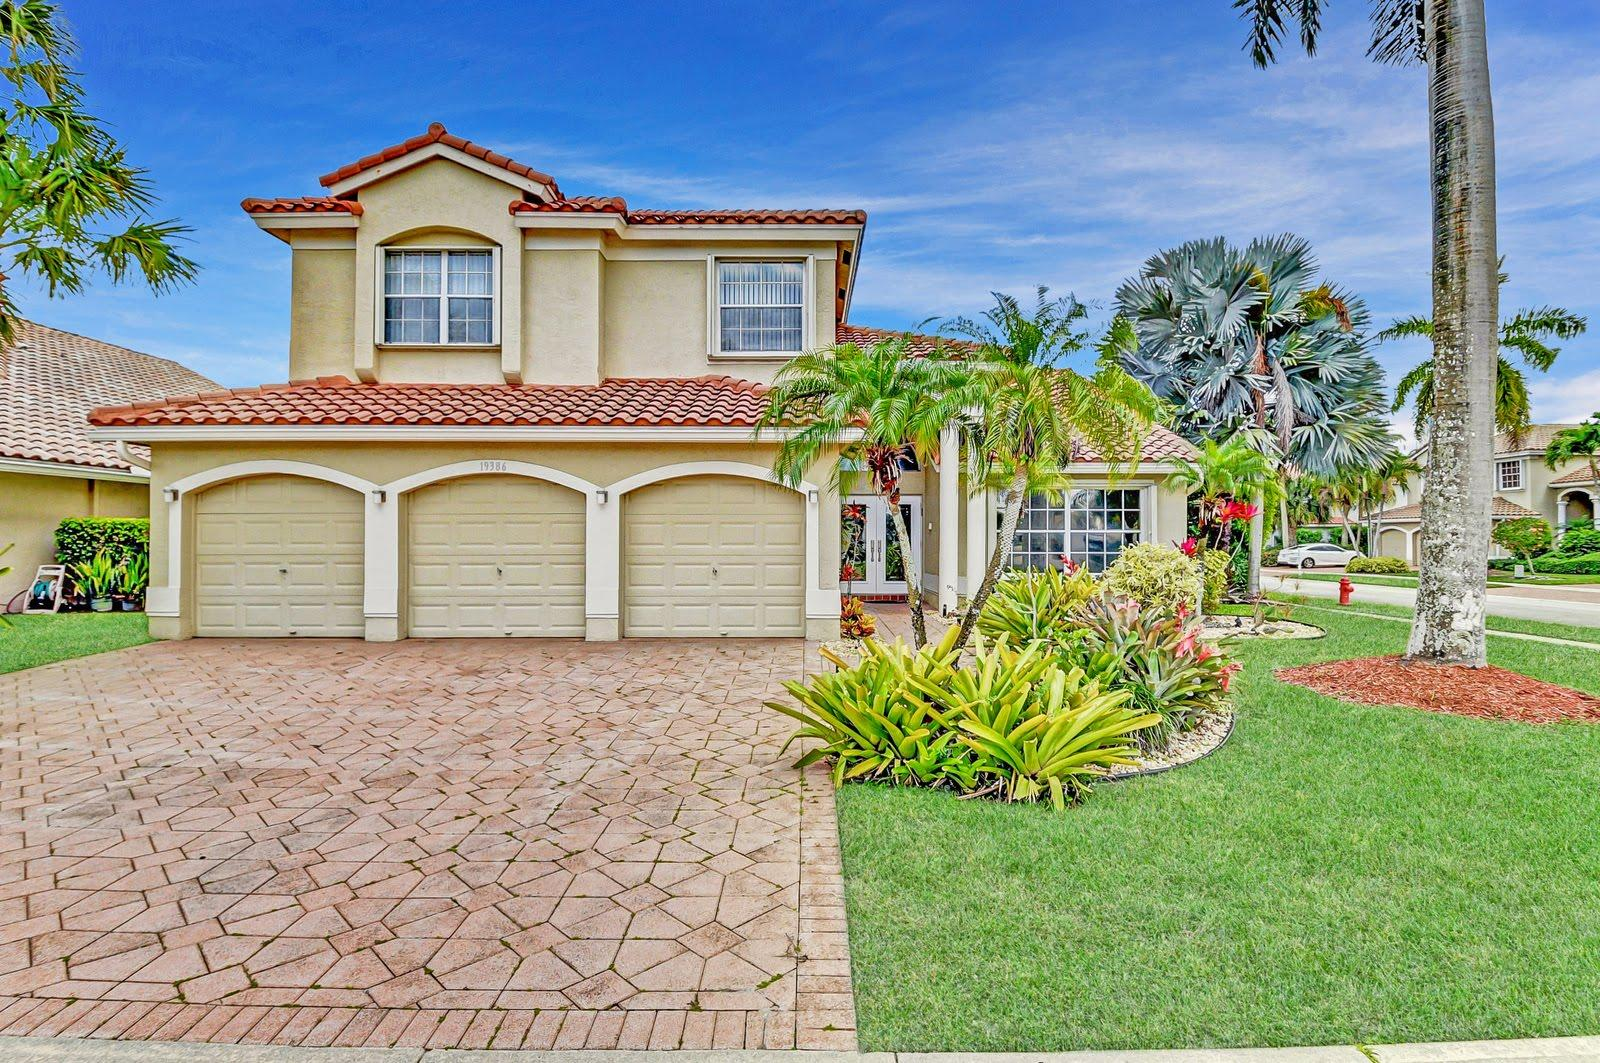 Photo of 19386 Ocean Grande Court, Boca Raton, FL 33498